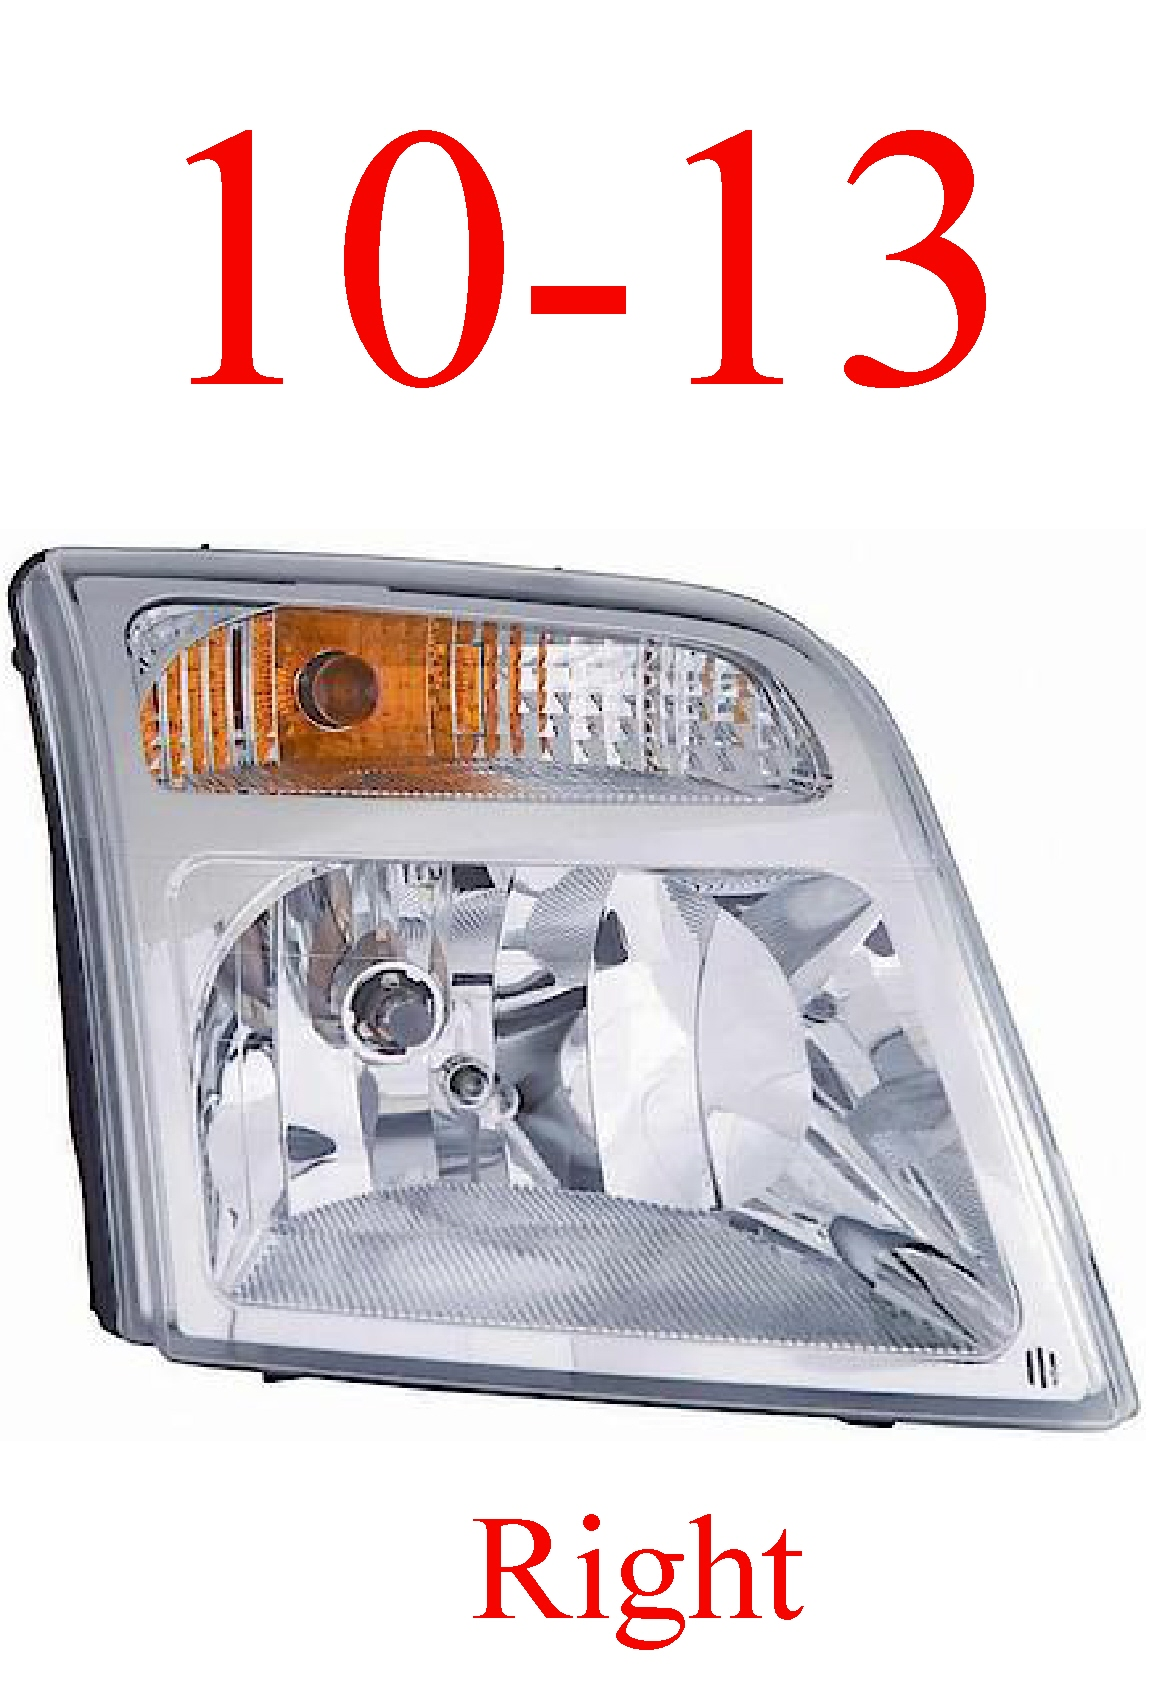 10-13 Ford Transit Connect Right Head Light Assembly